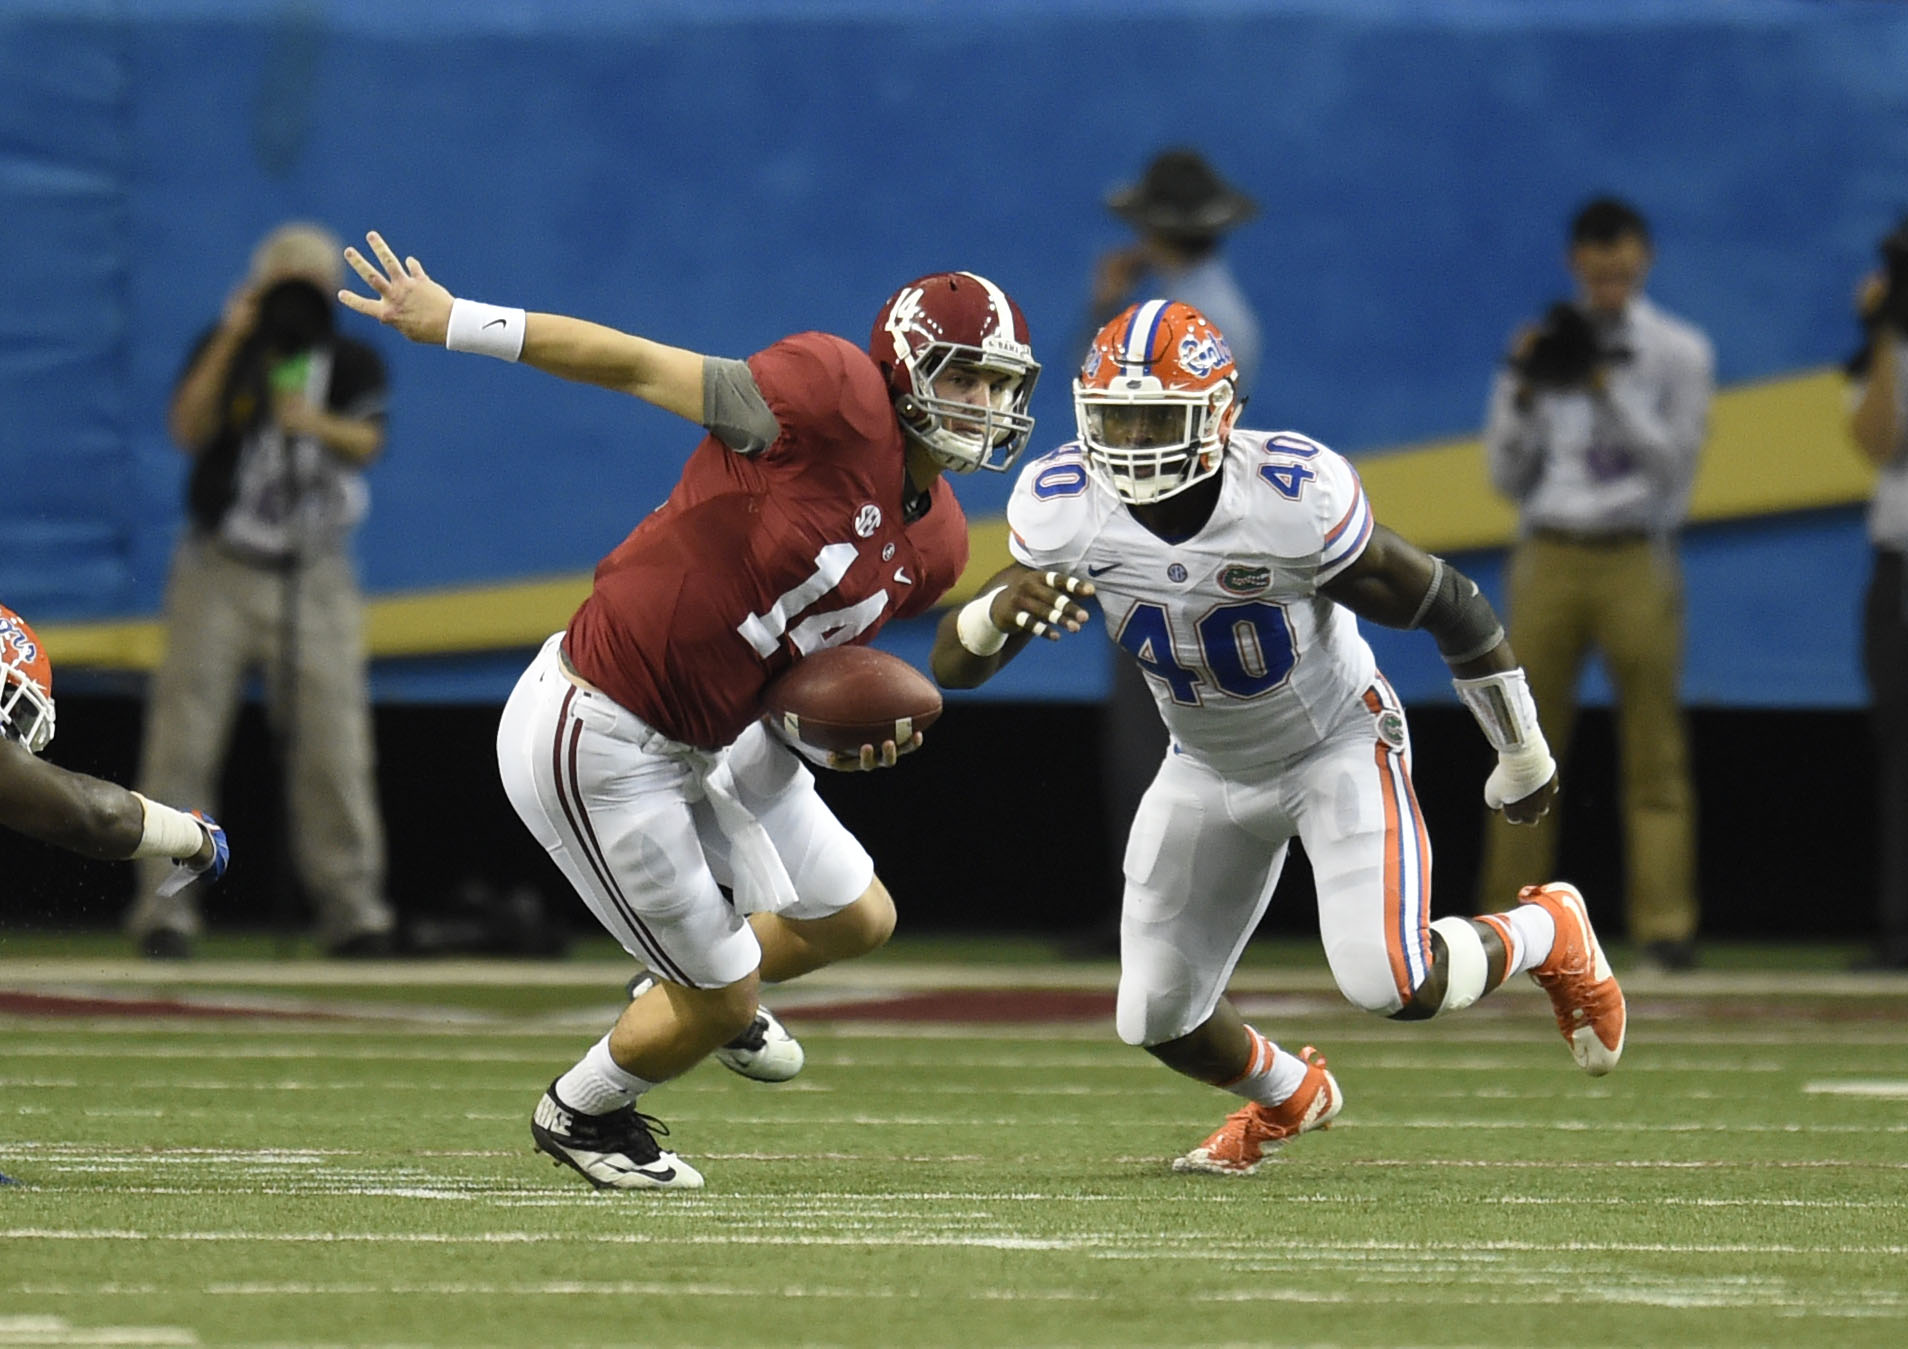 8976178-ncaa-football-sec-championship-florida-vs-alabama-3